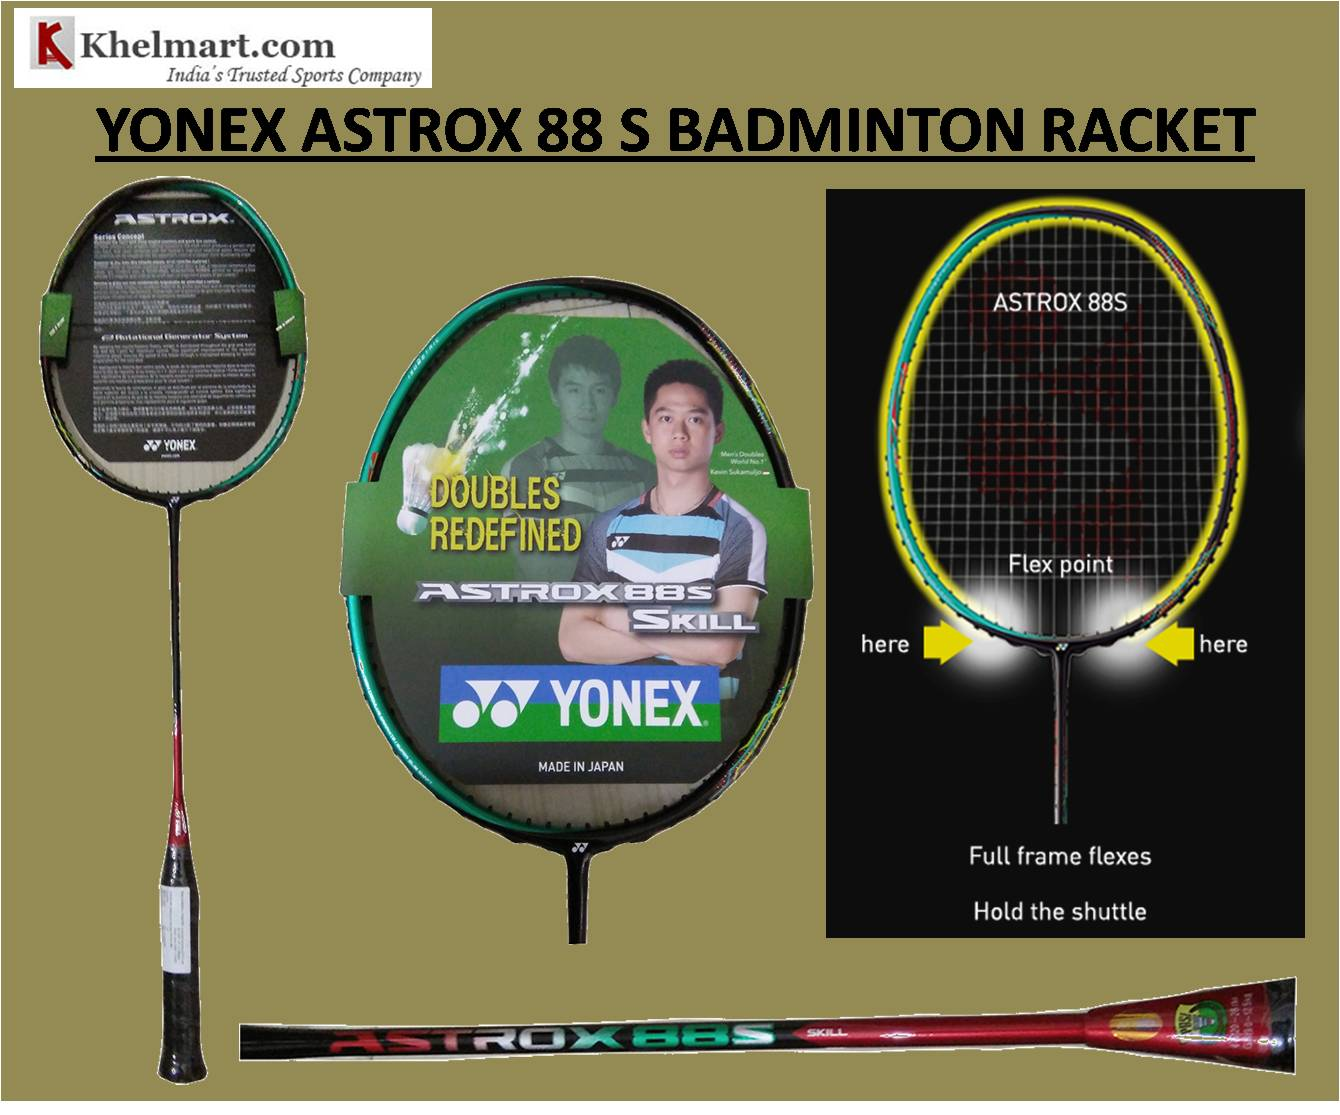 Comparison of Astrox 88 S VS Astrox 88 D Badminton Rackets